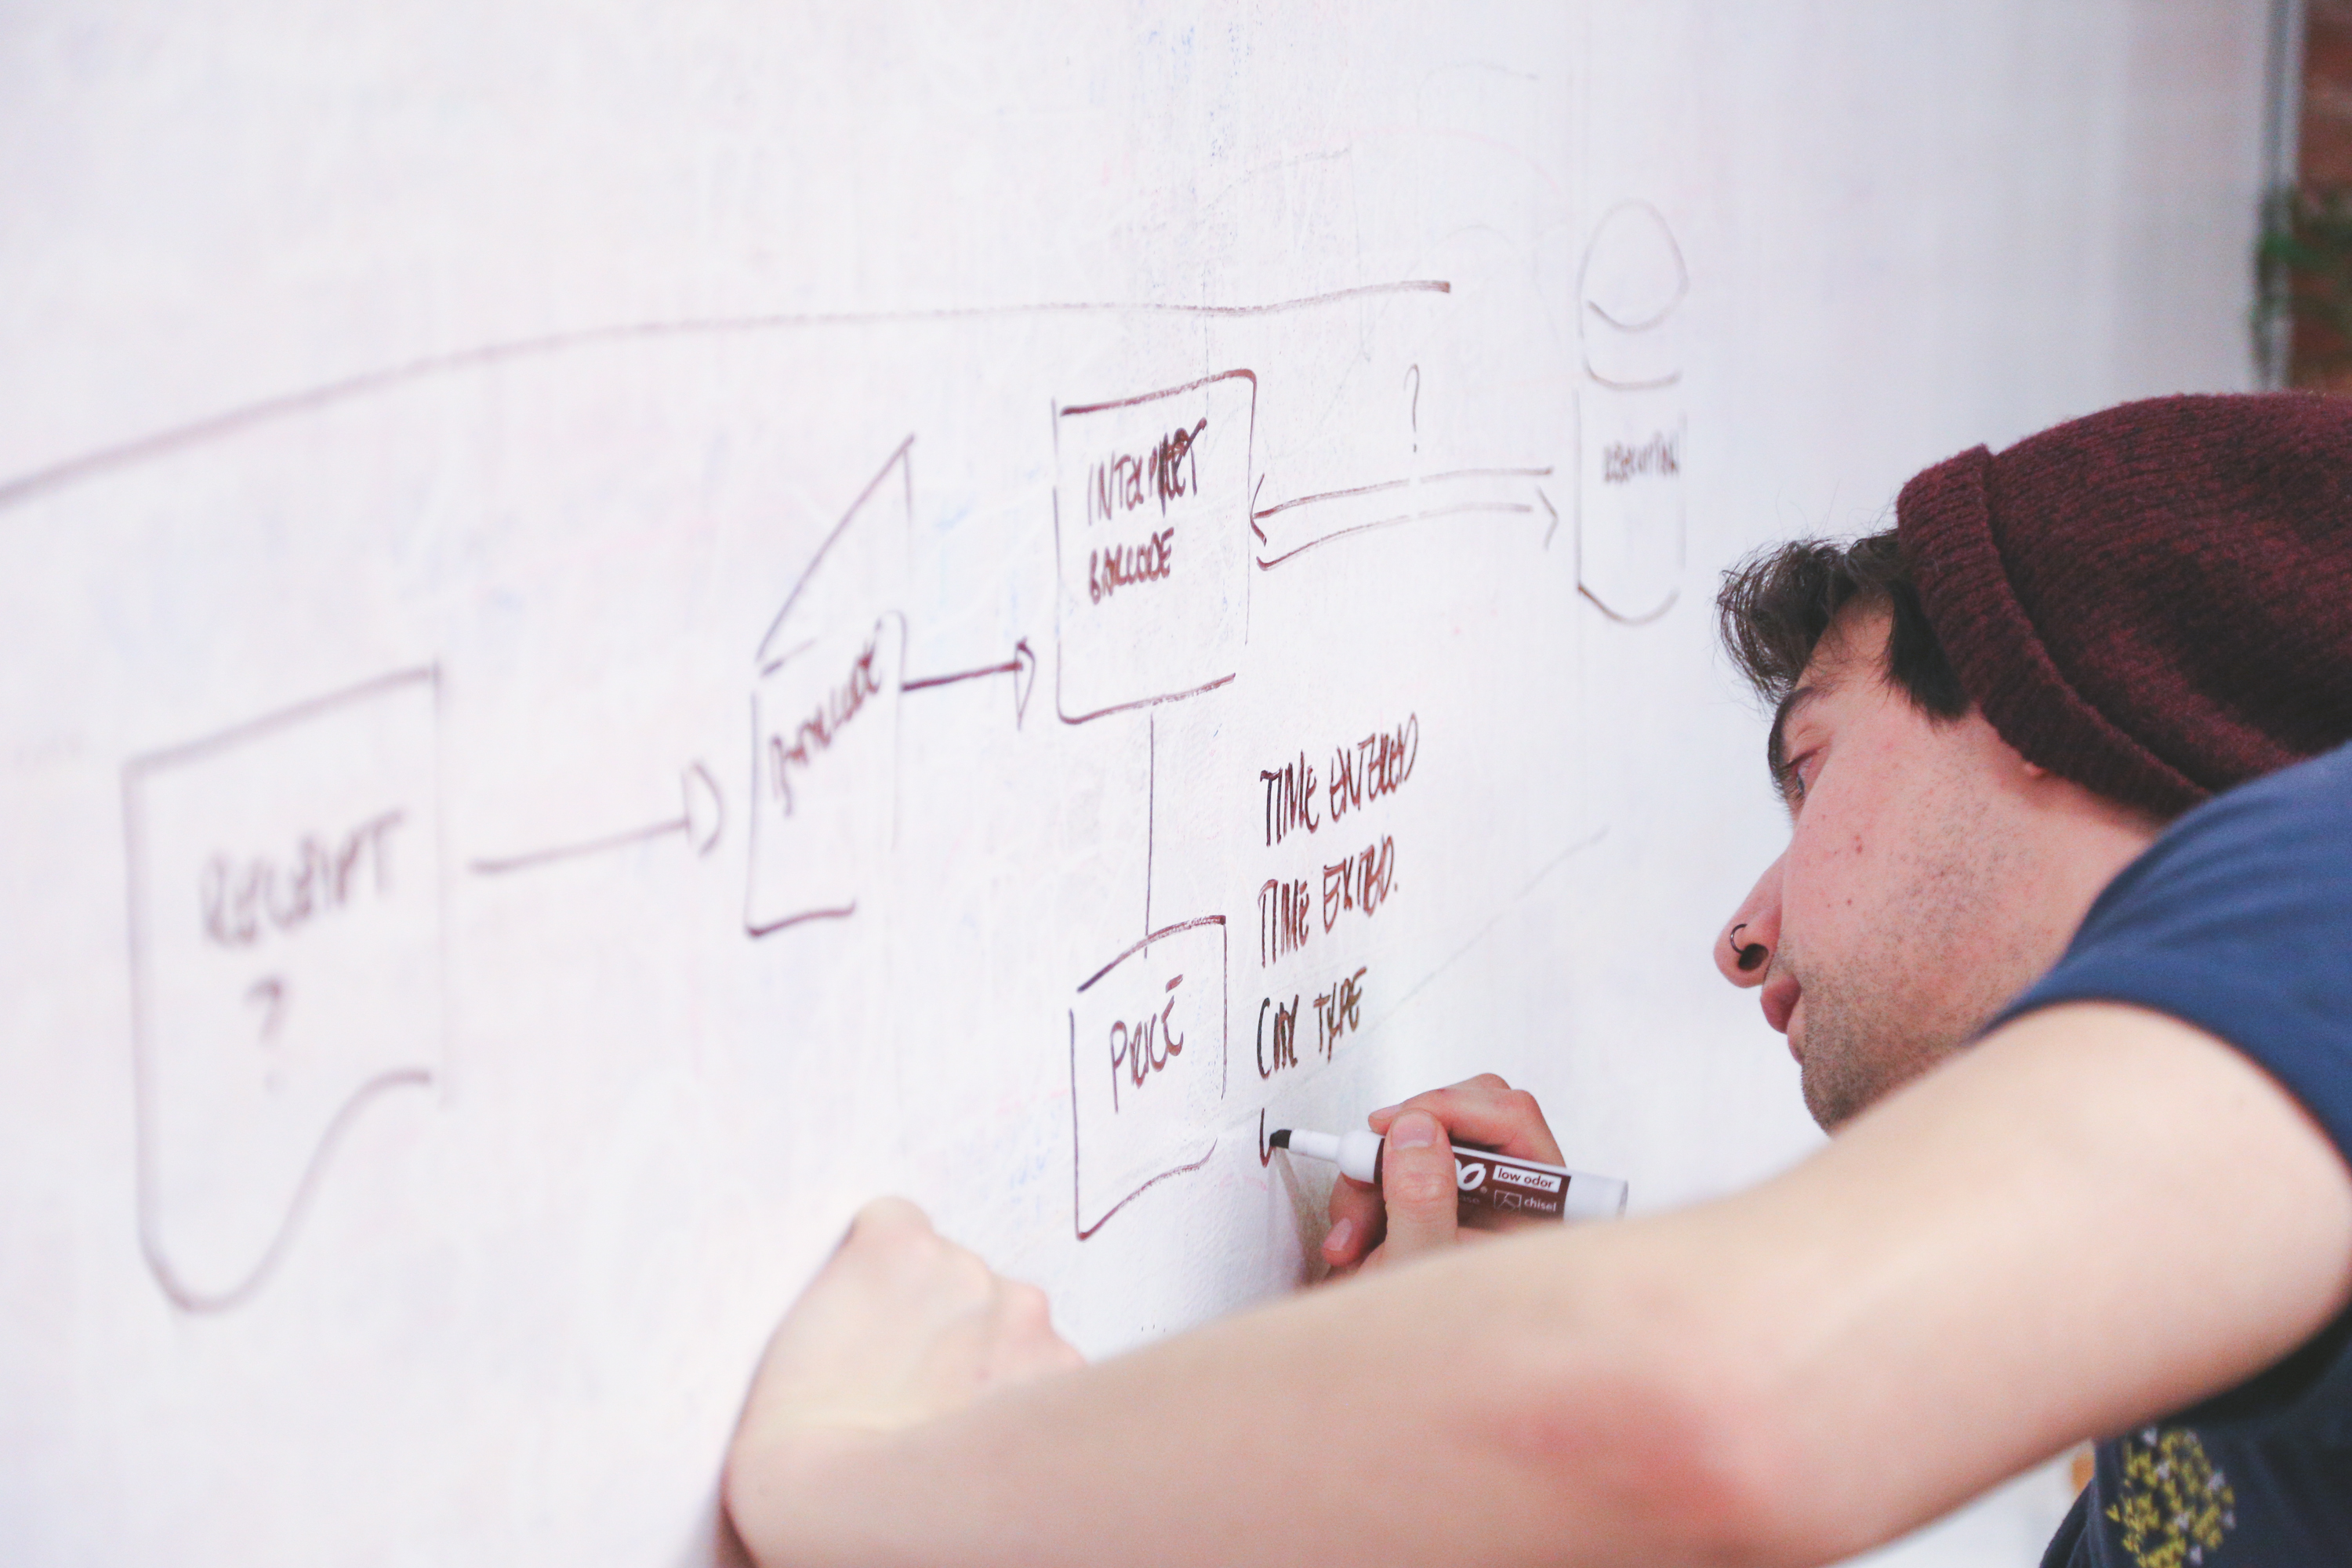 Guy mapping the business process